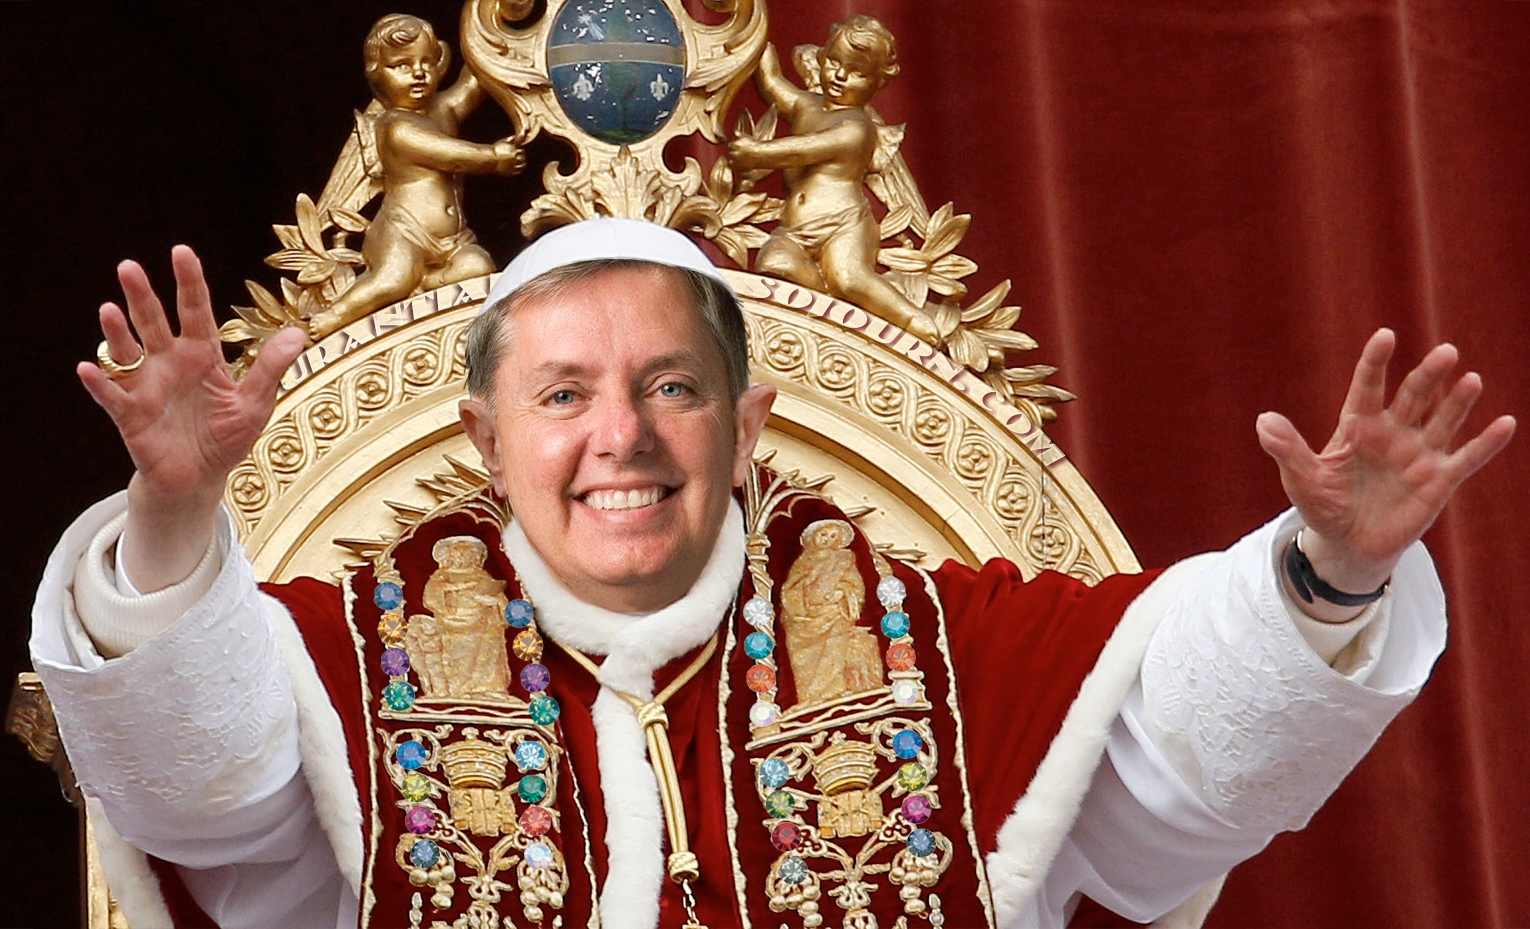 POPE Ms LINDSEY